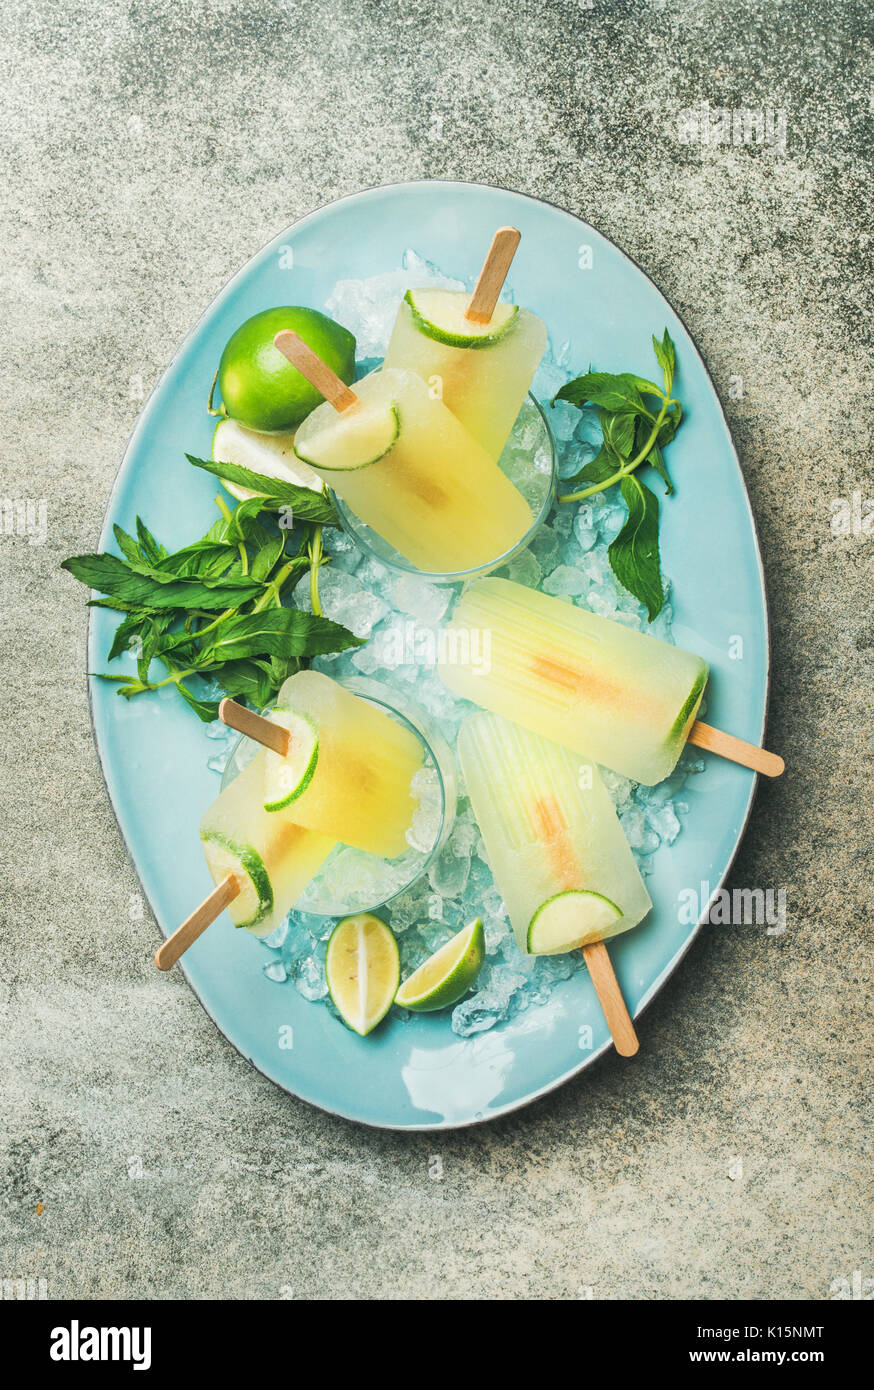 Summer refreshing lemonade popsicles with lime and mint on plate - Stock Image